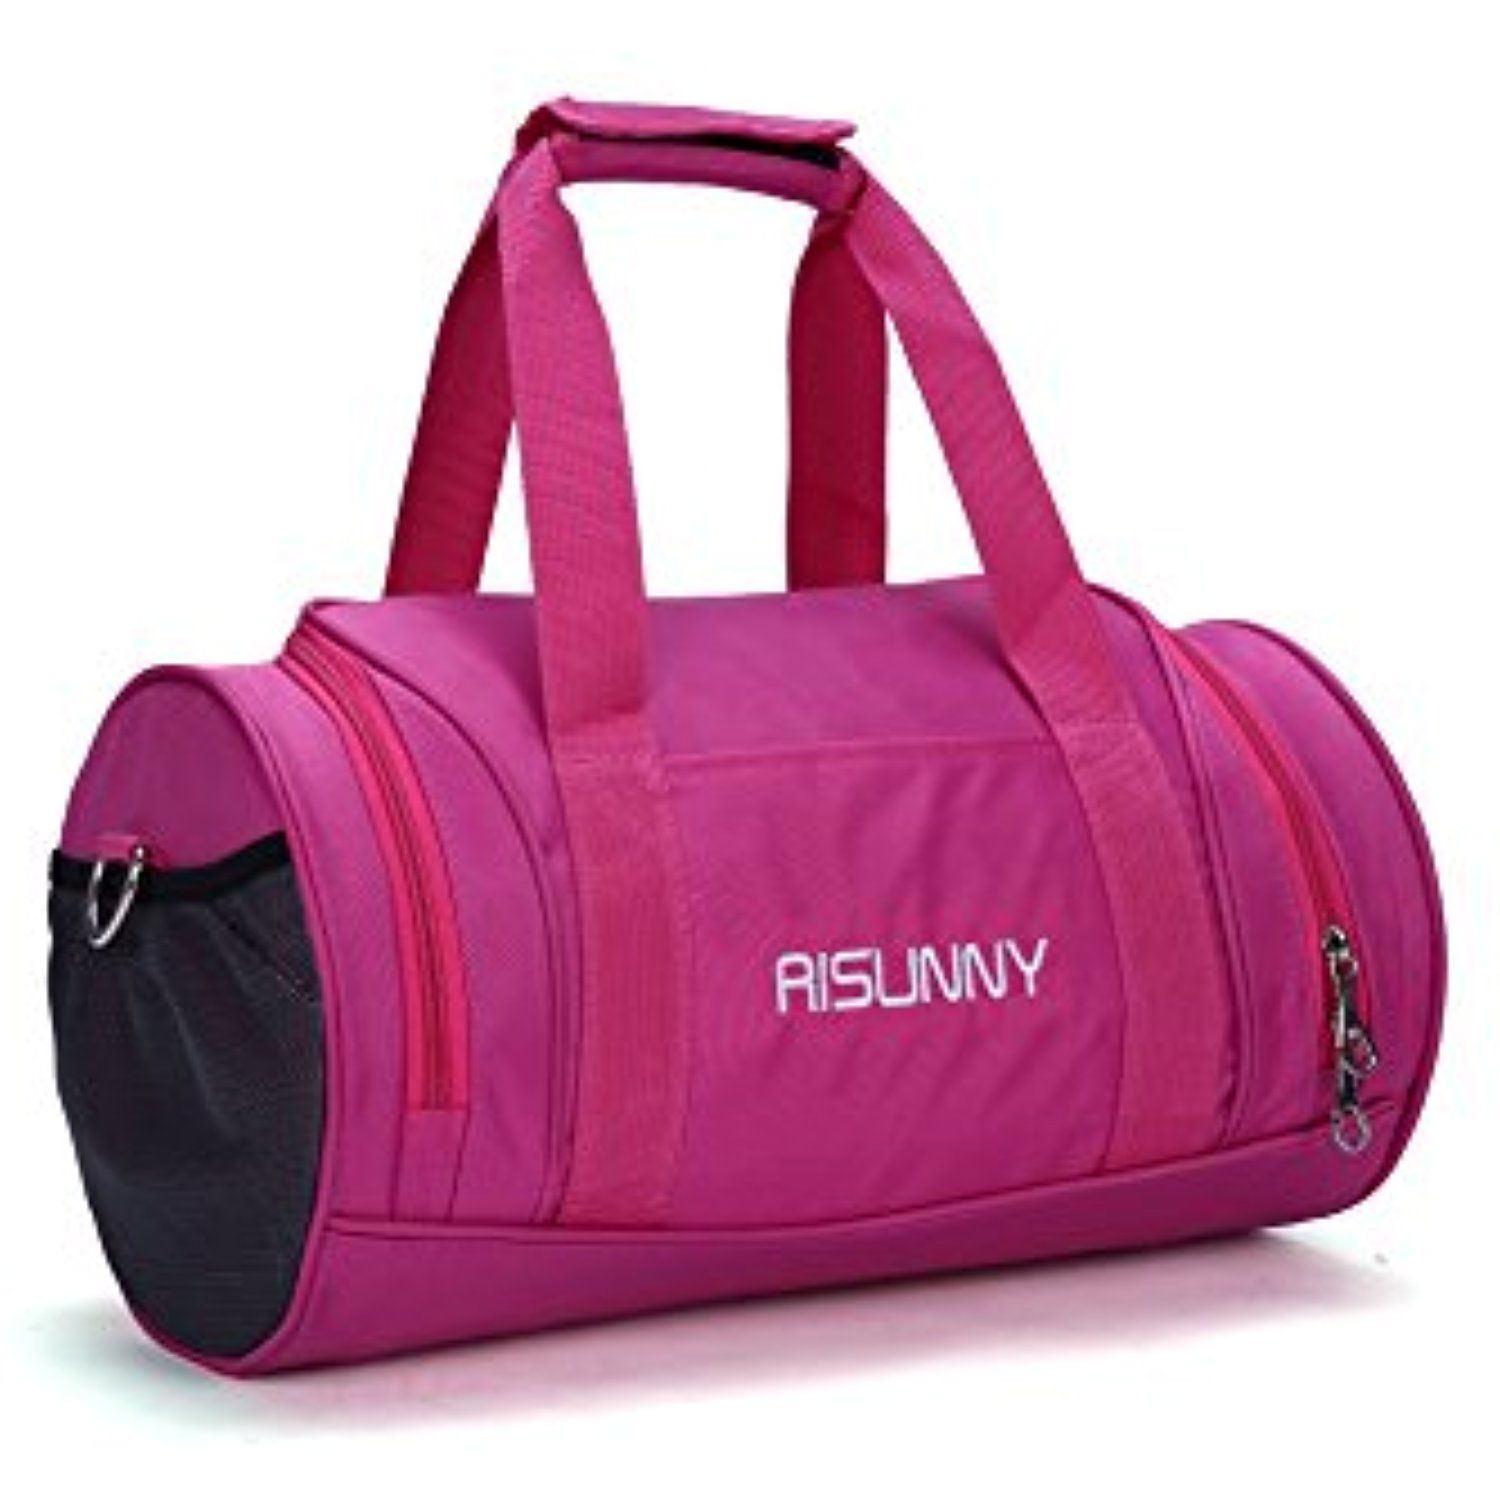 5d16ba22c0 RISUNNY Barrel Fitness Gym Bag Small Travel Sports Bags for Men and Women   Accessories